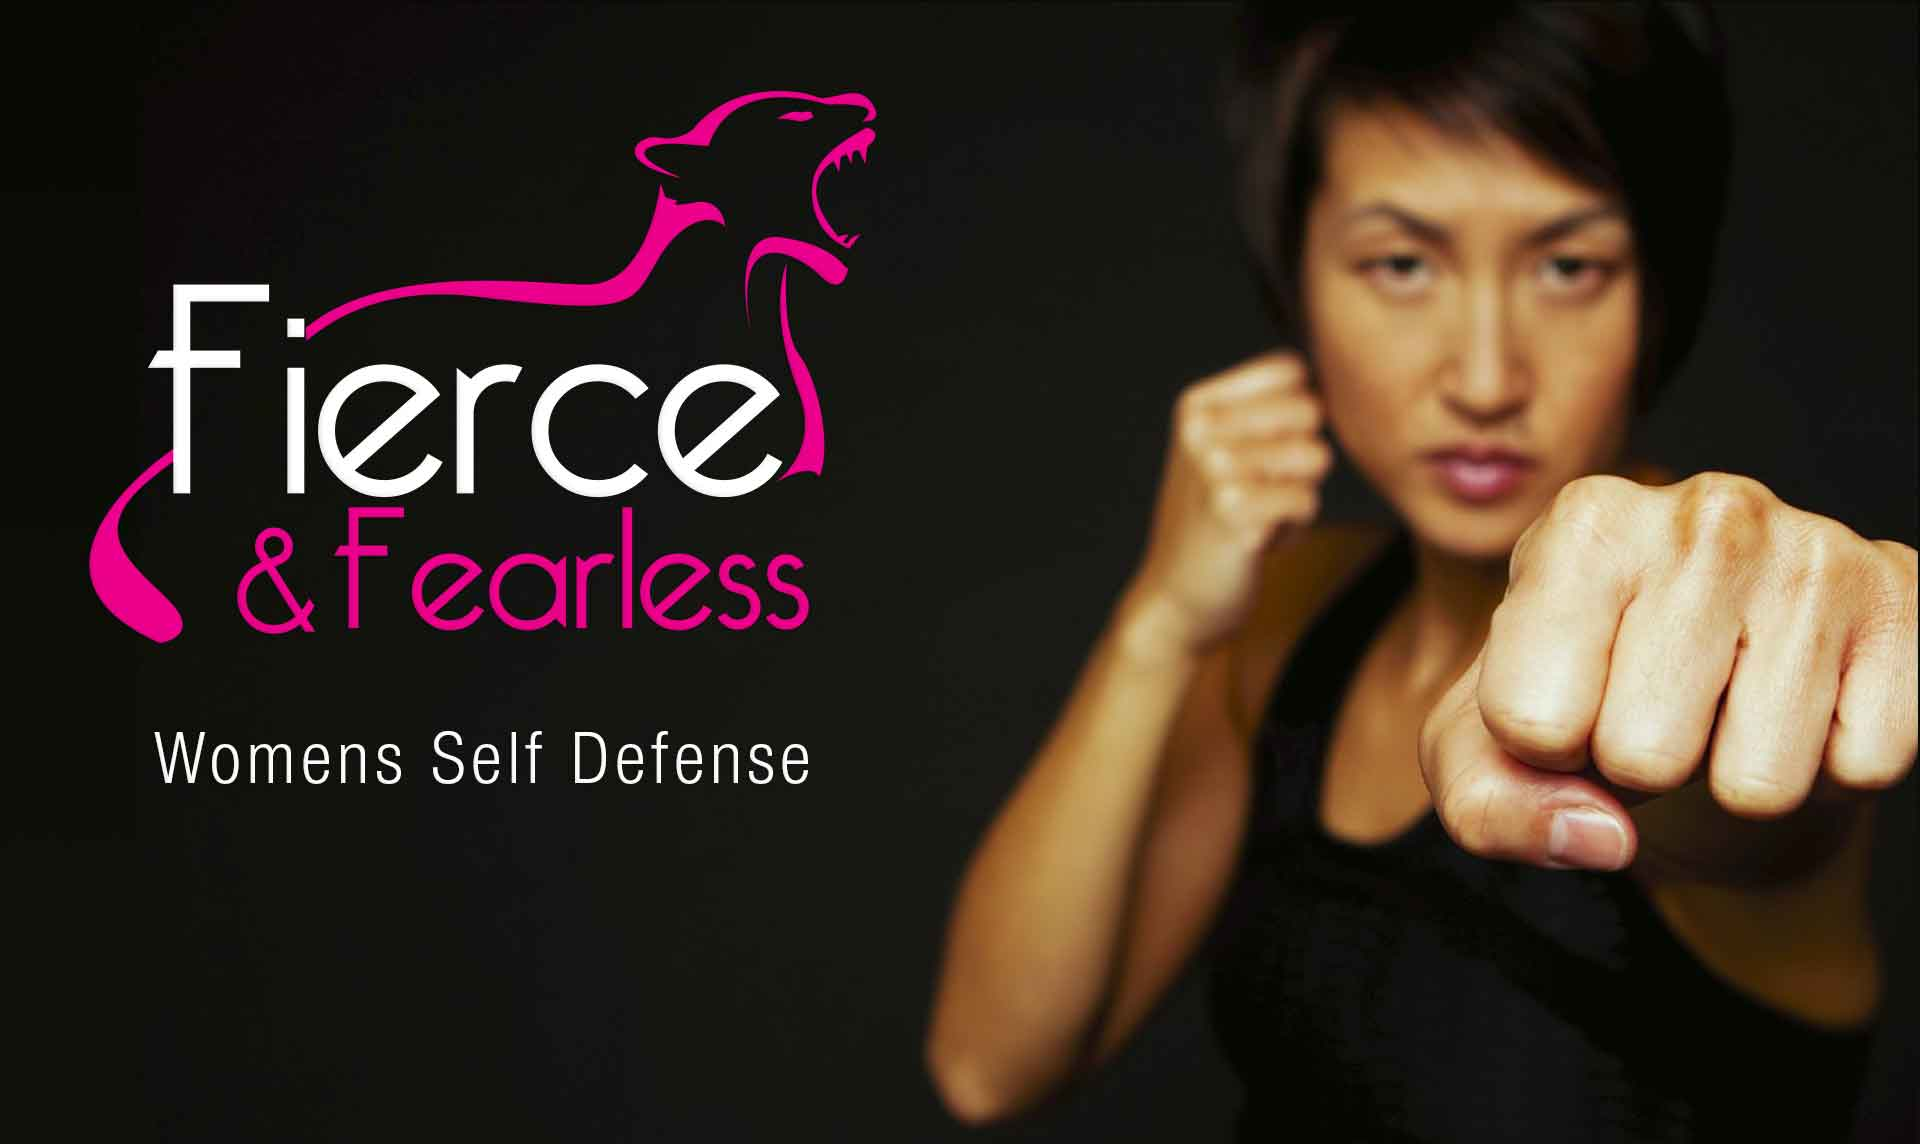 PRIDE MARTIAL ARTS, Edmond, Oklahoma - Women's Self-Defense - Fierce & Fearless Personal Protection Boot Camp